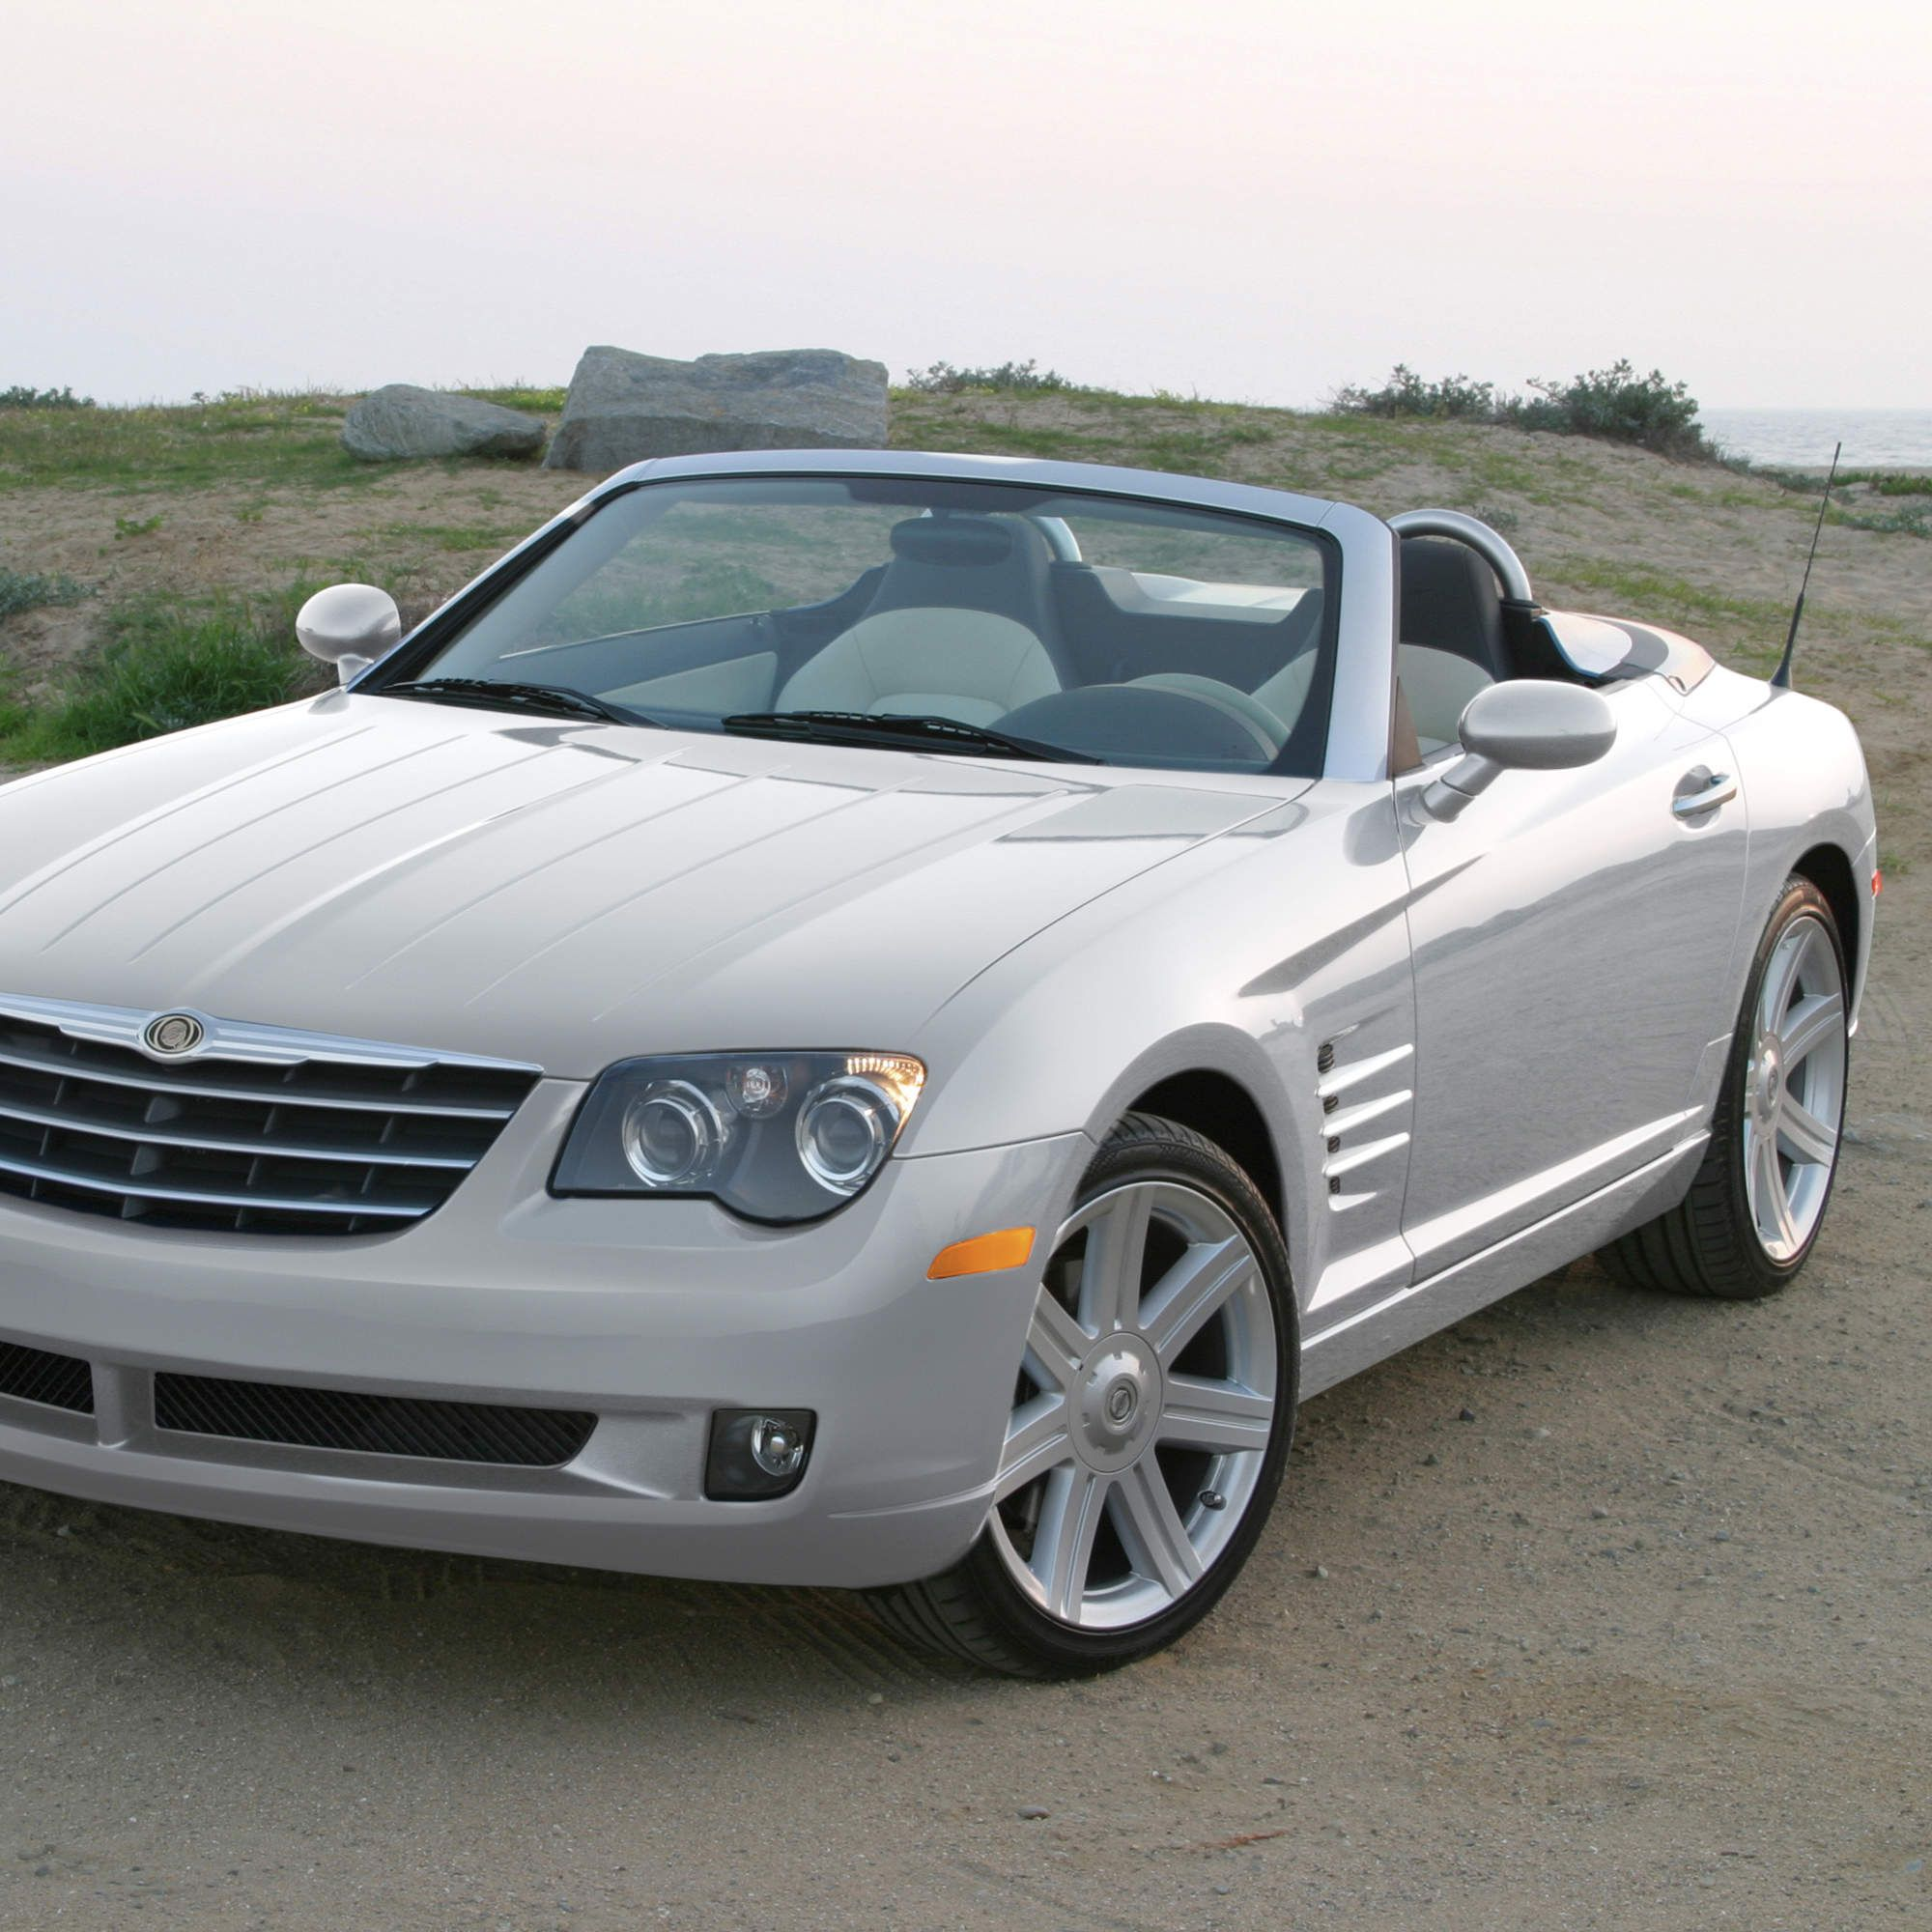 10 Underrated American Cars You Can Buy For Under 5k Chrysler